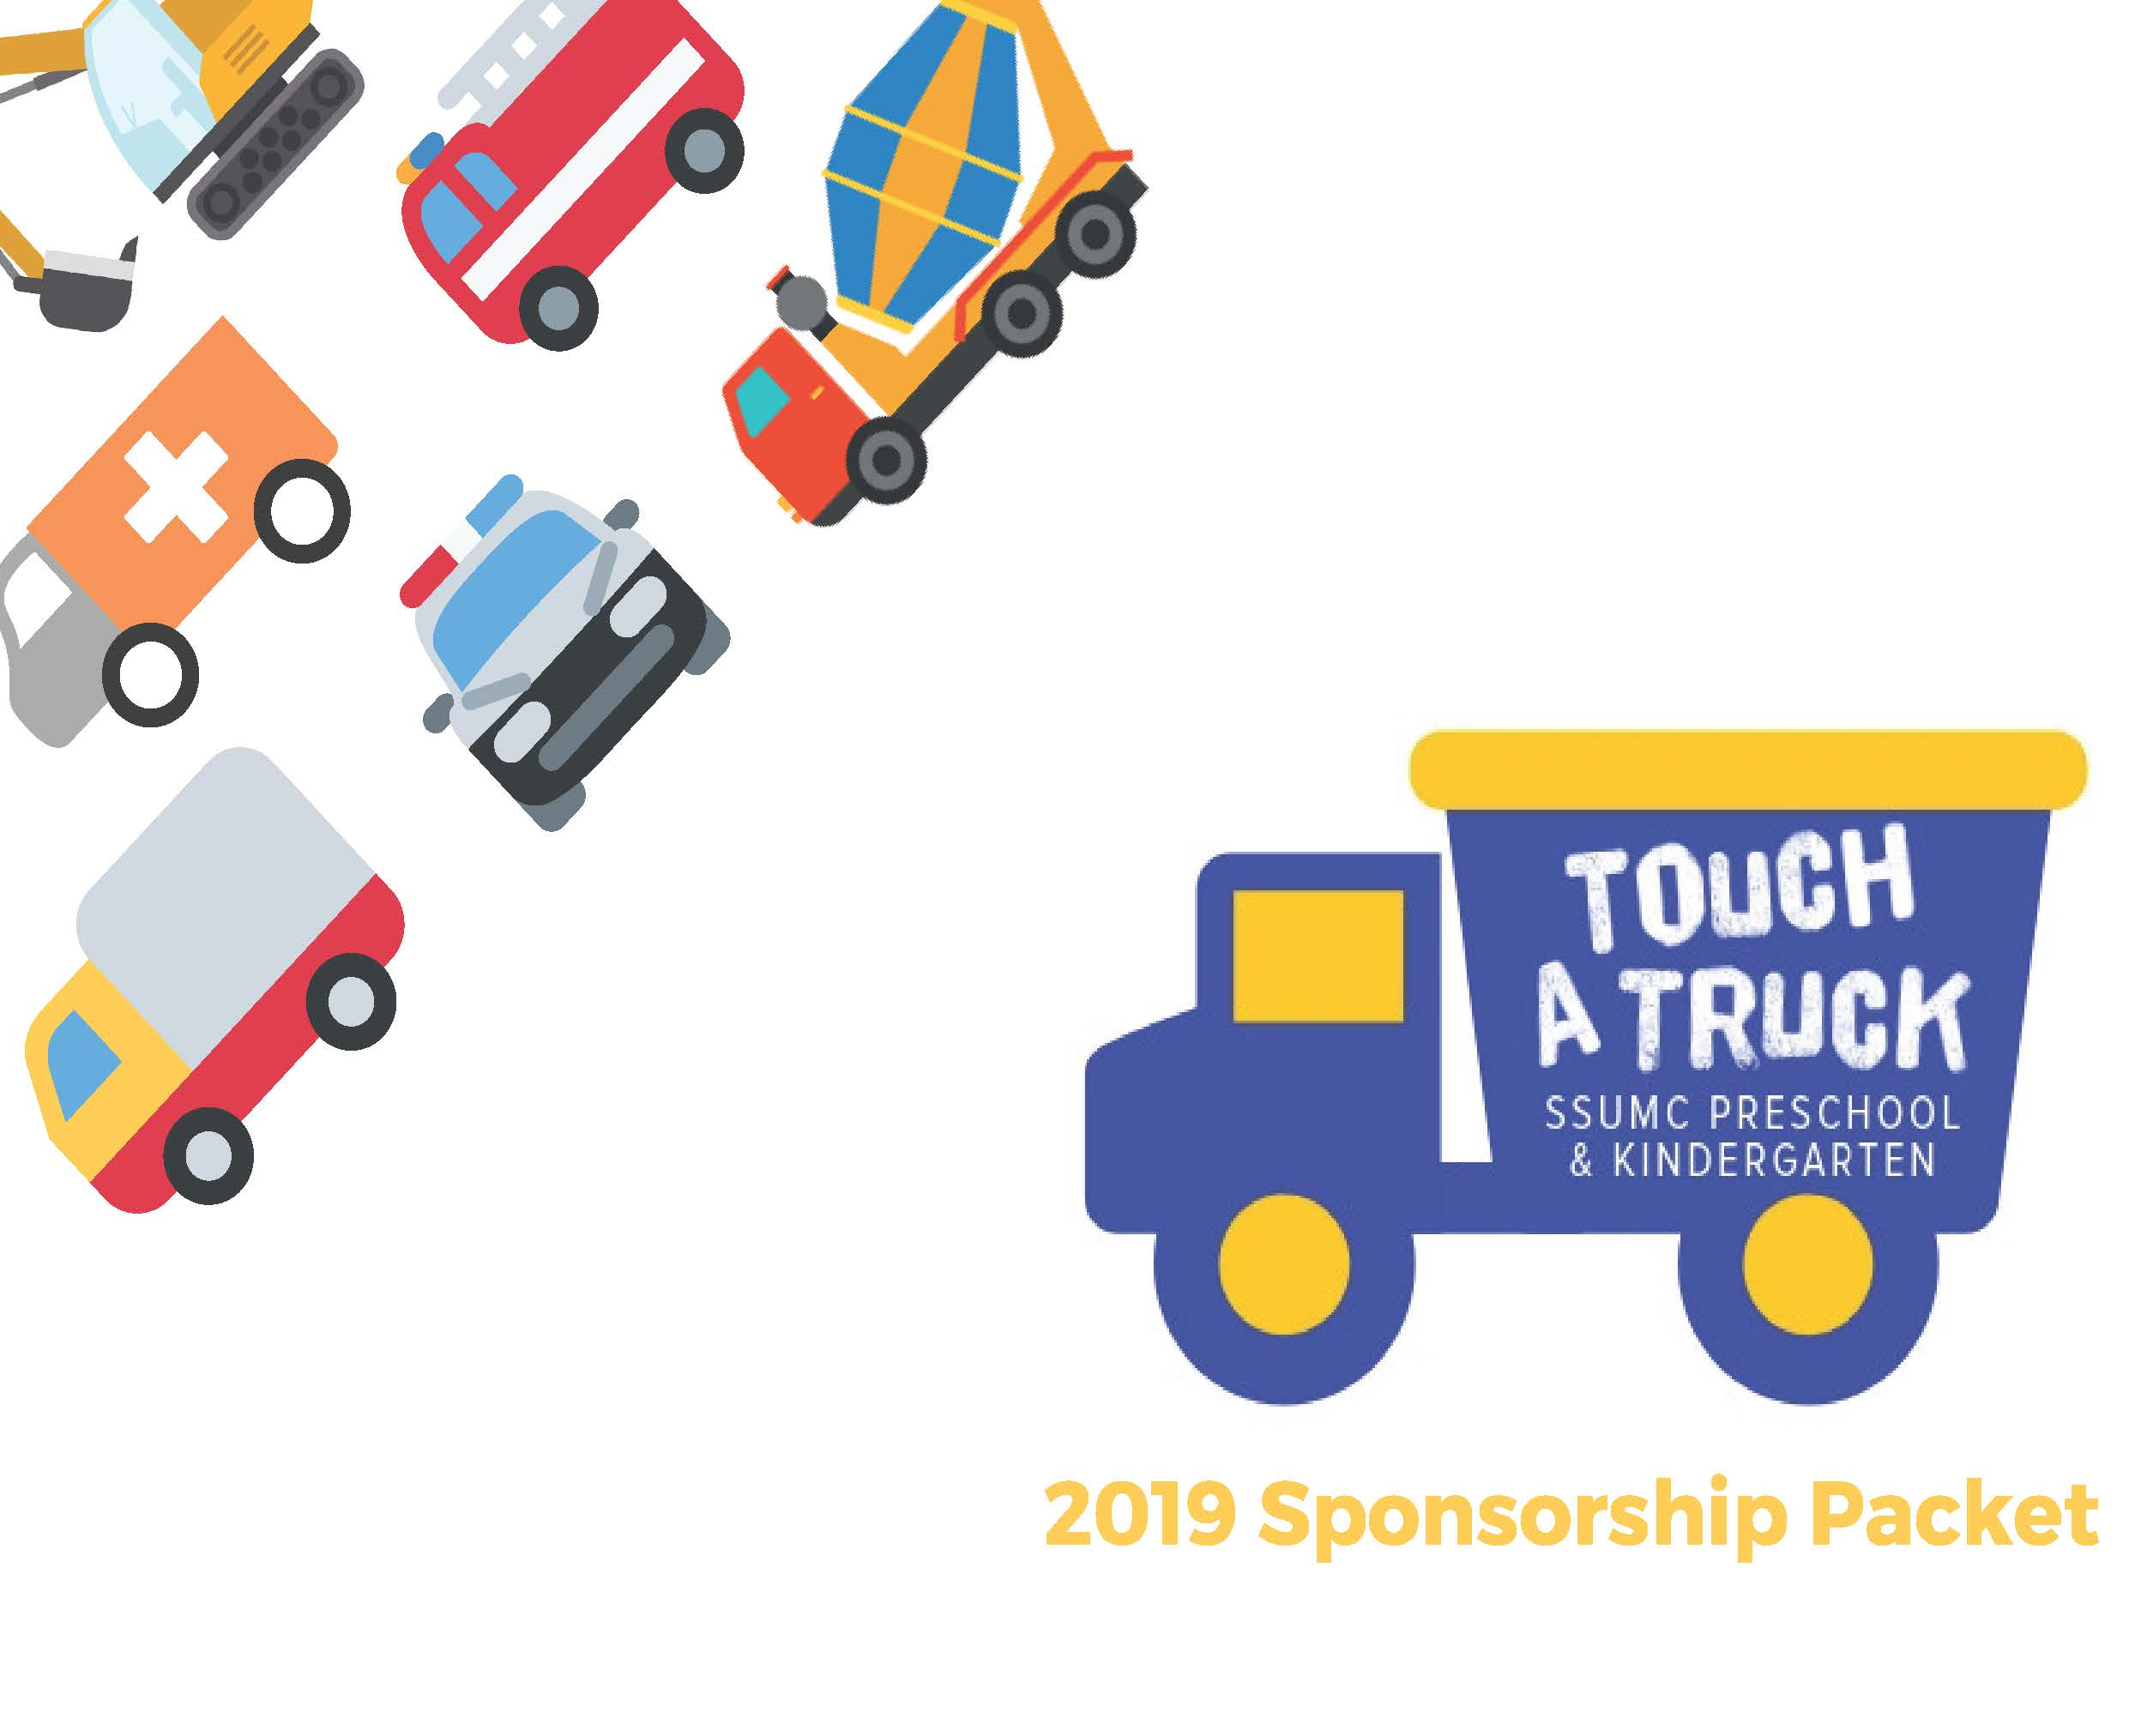 Click on the packet to find out which level of sponsorship is just right for your organization!